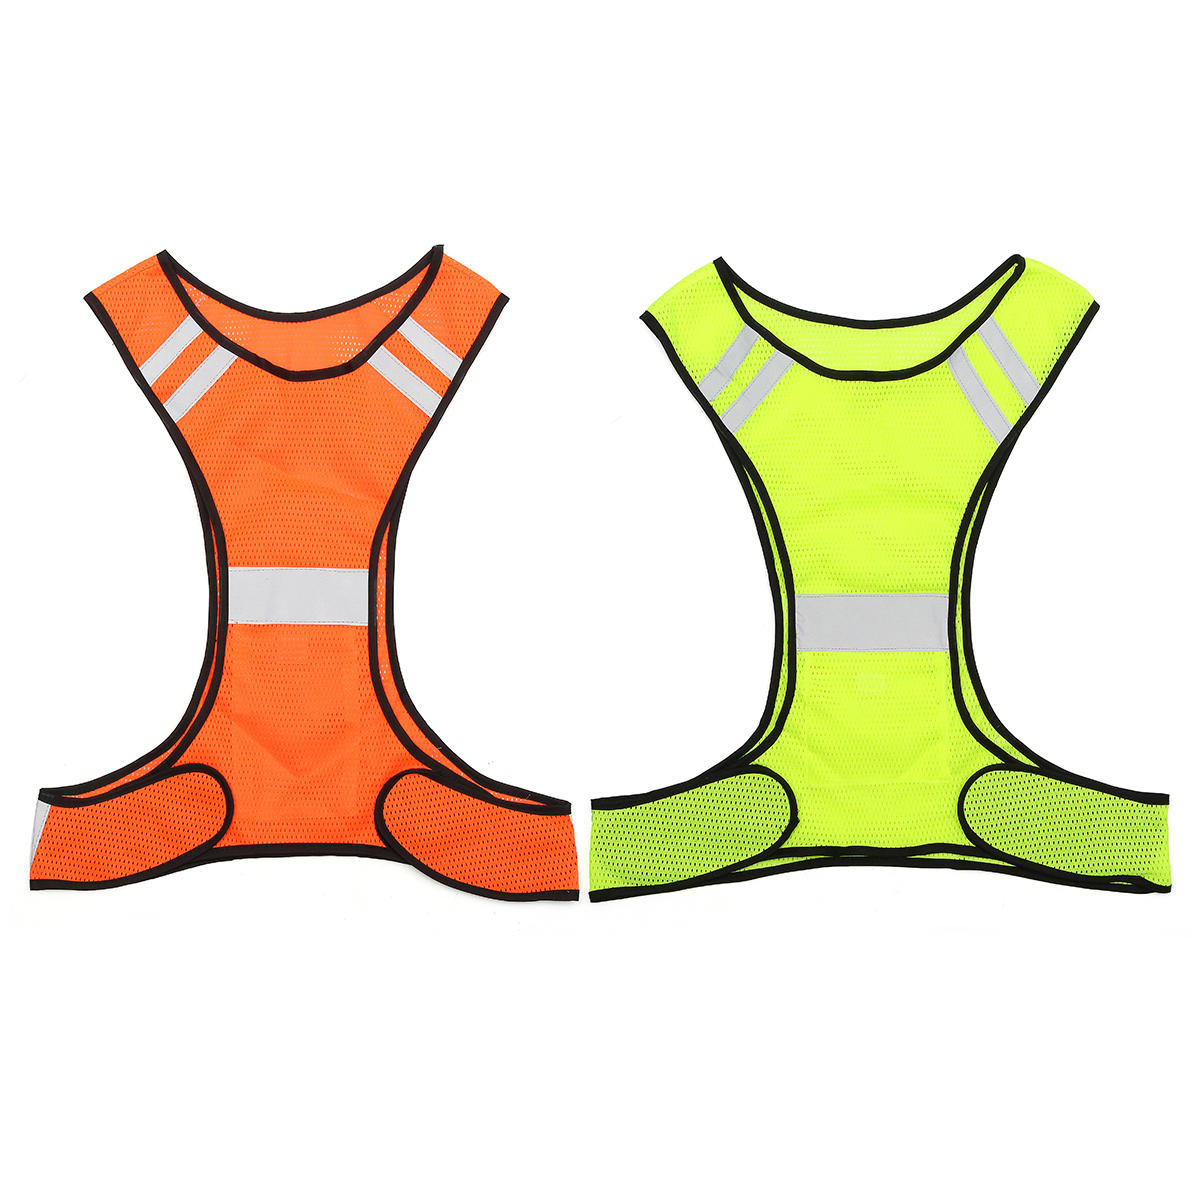 Night Work High Visibility Reflective Vest Security Safety Gear Stripes Jacket, Banggood  - buy with discount